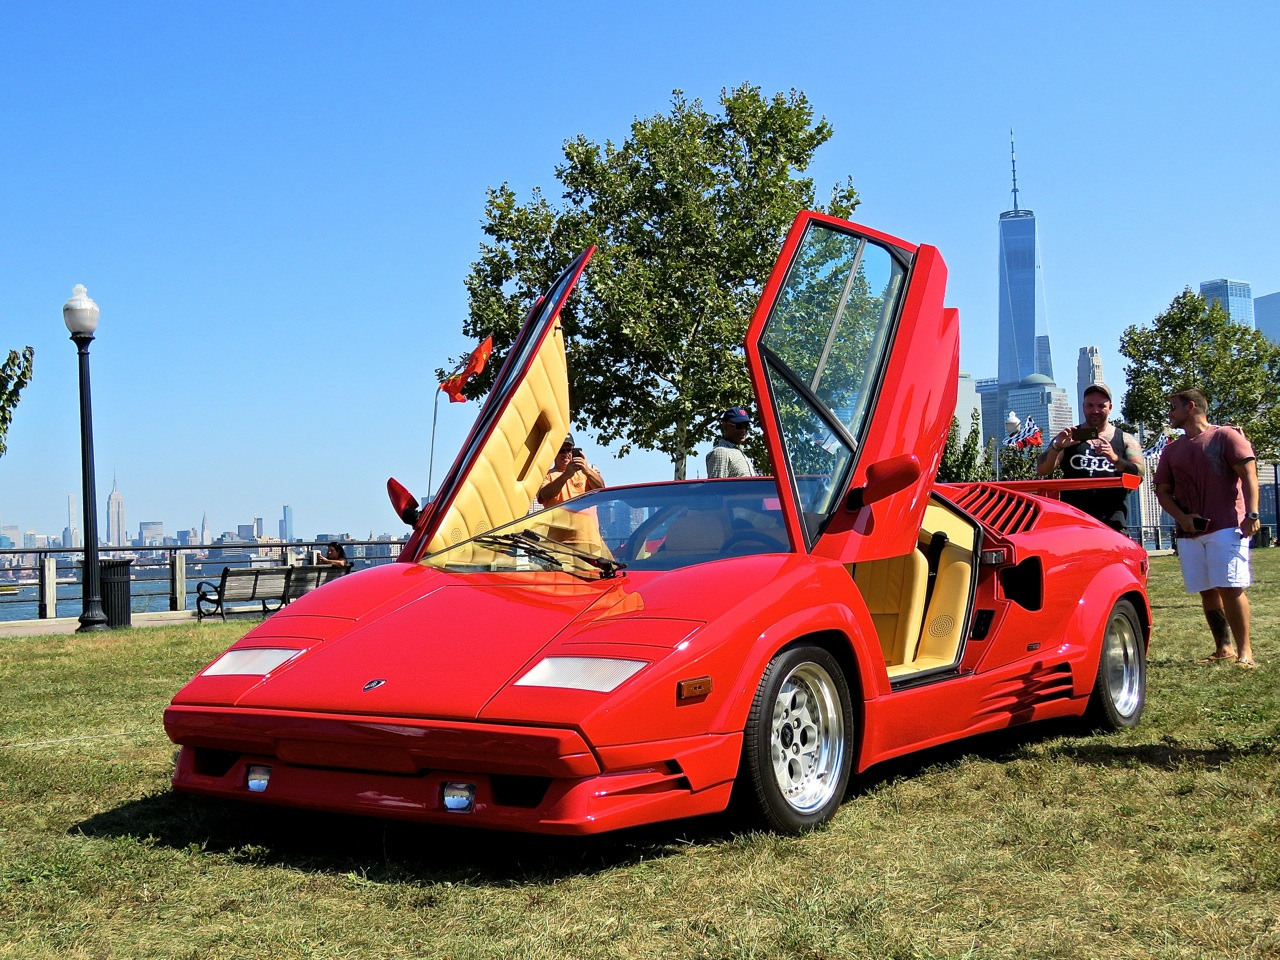 Lamborghini Countach 25th Driven by Purpose 1